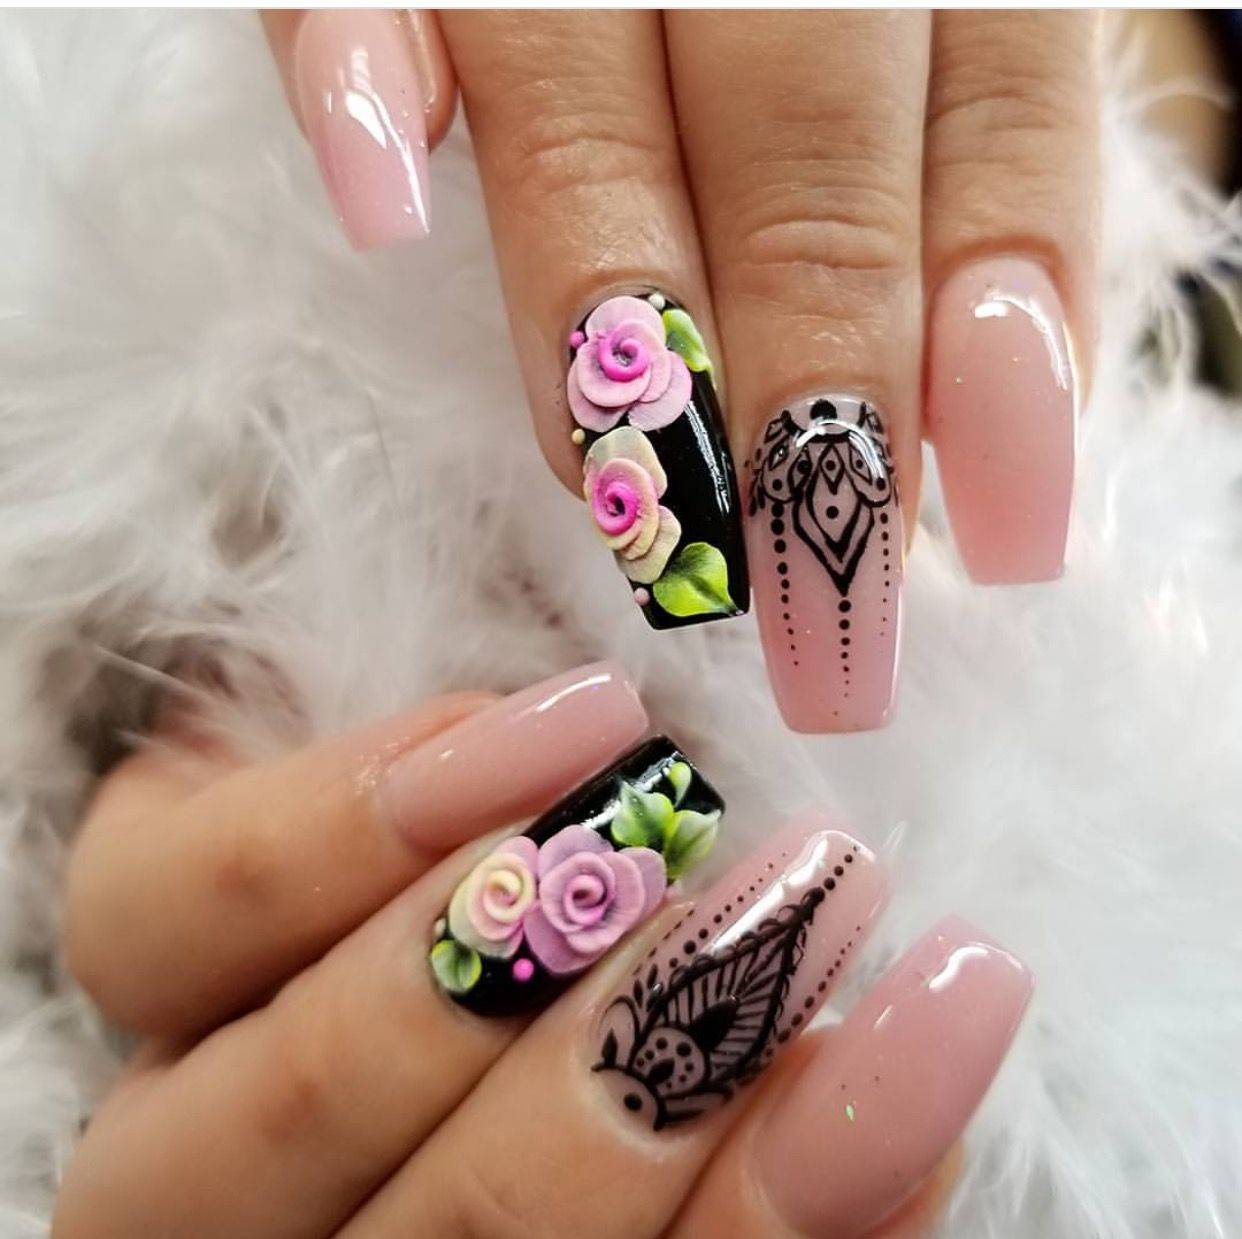 Uñas Semipermanentes Decoradas Pin De Jancy Lopez Rivera En Coffin Nail Design Nails